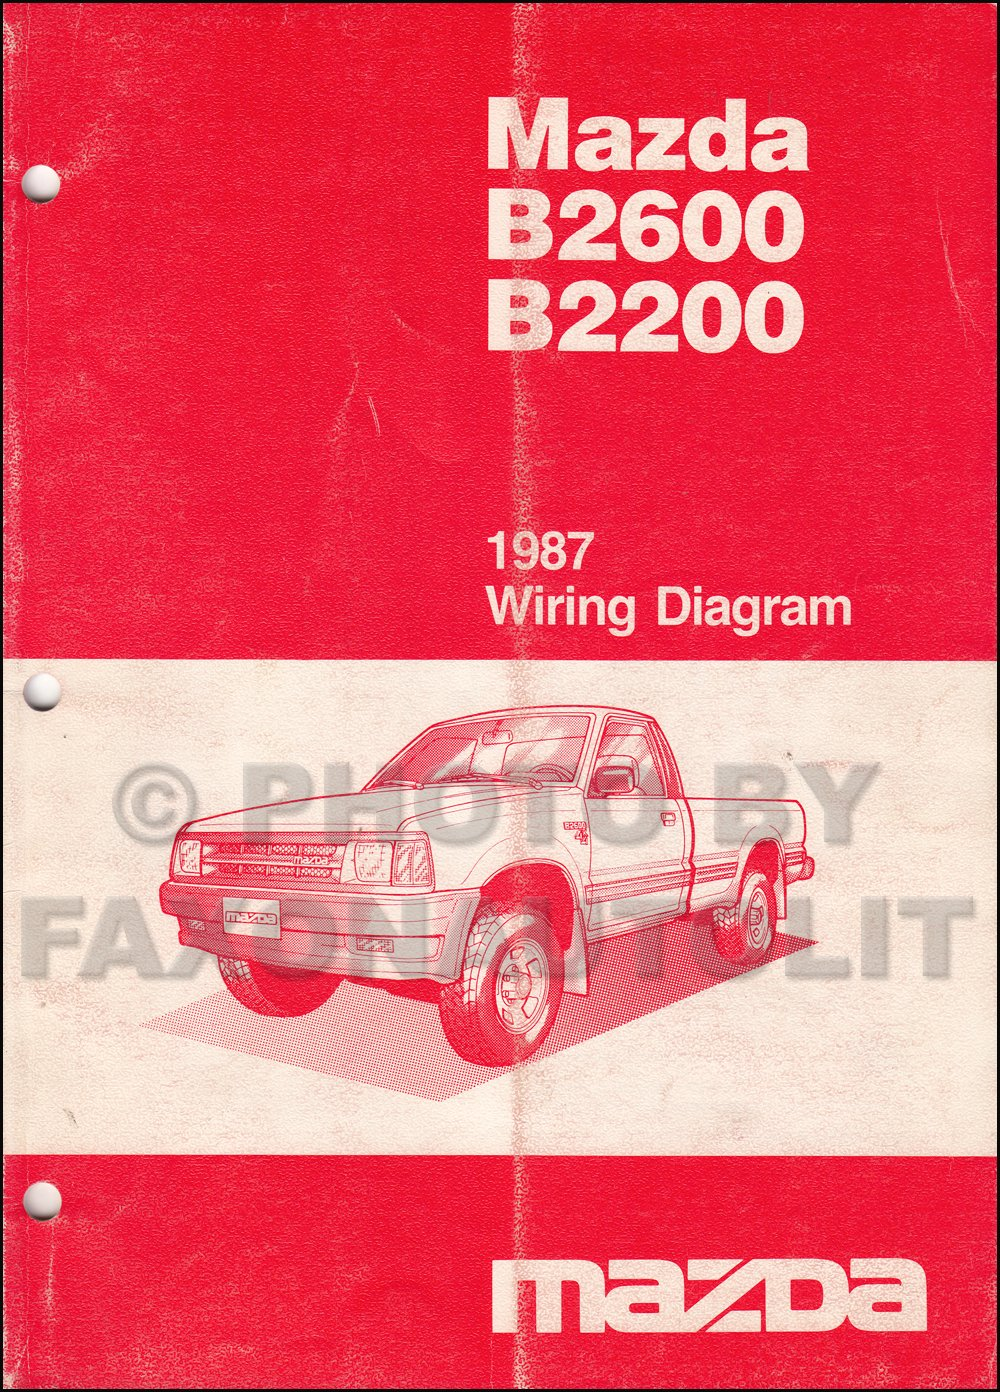 1987 Mazda B2200 B2600 Pickup Truck Wiring Diagram Manual Original: Mazda:  Amazon.com: Books